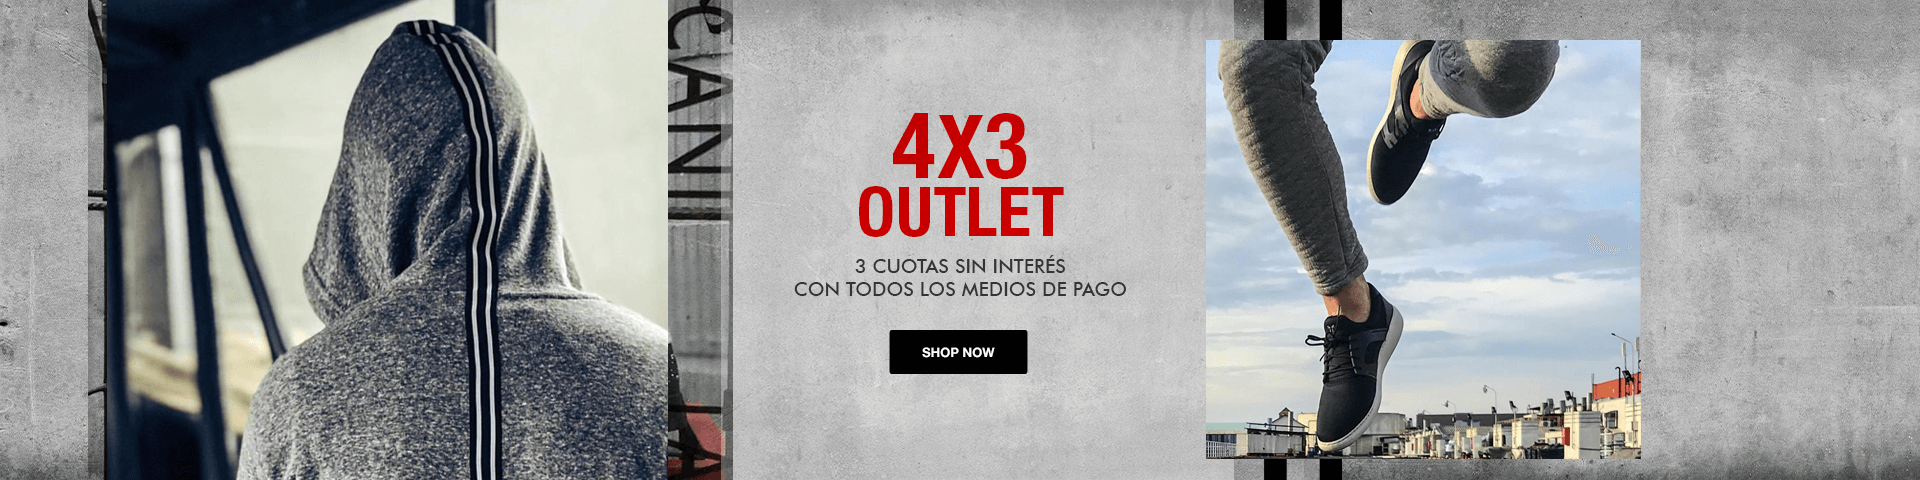 Outlet 4X3